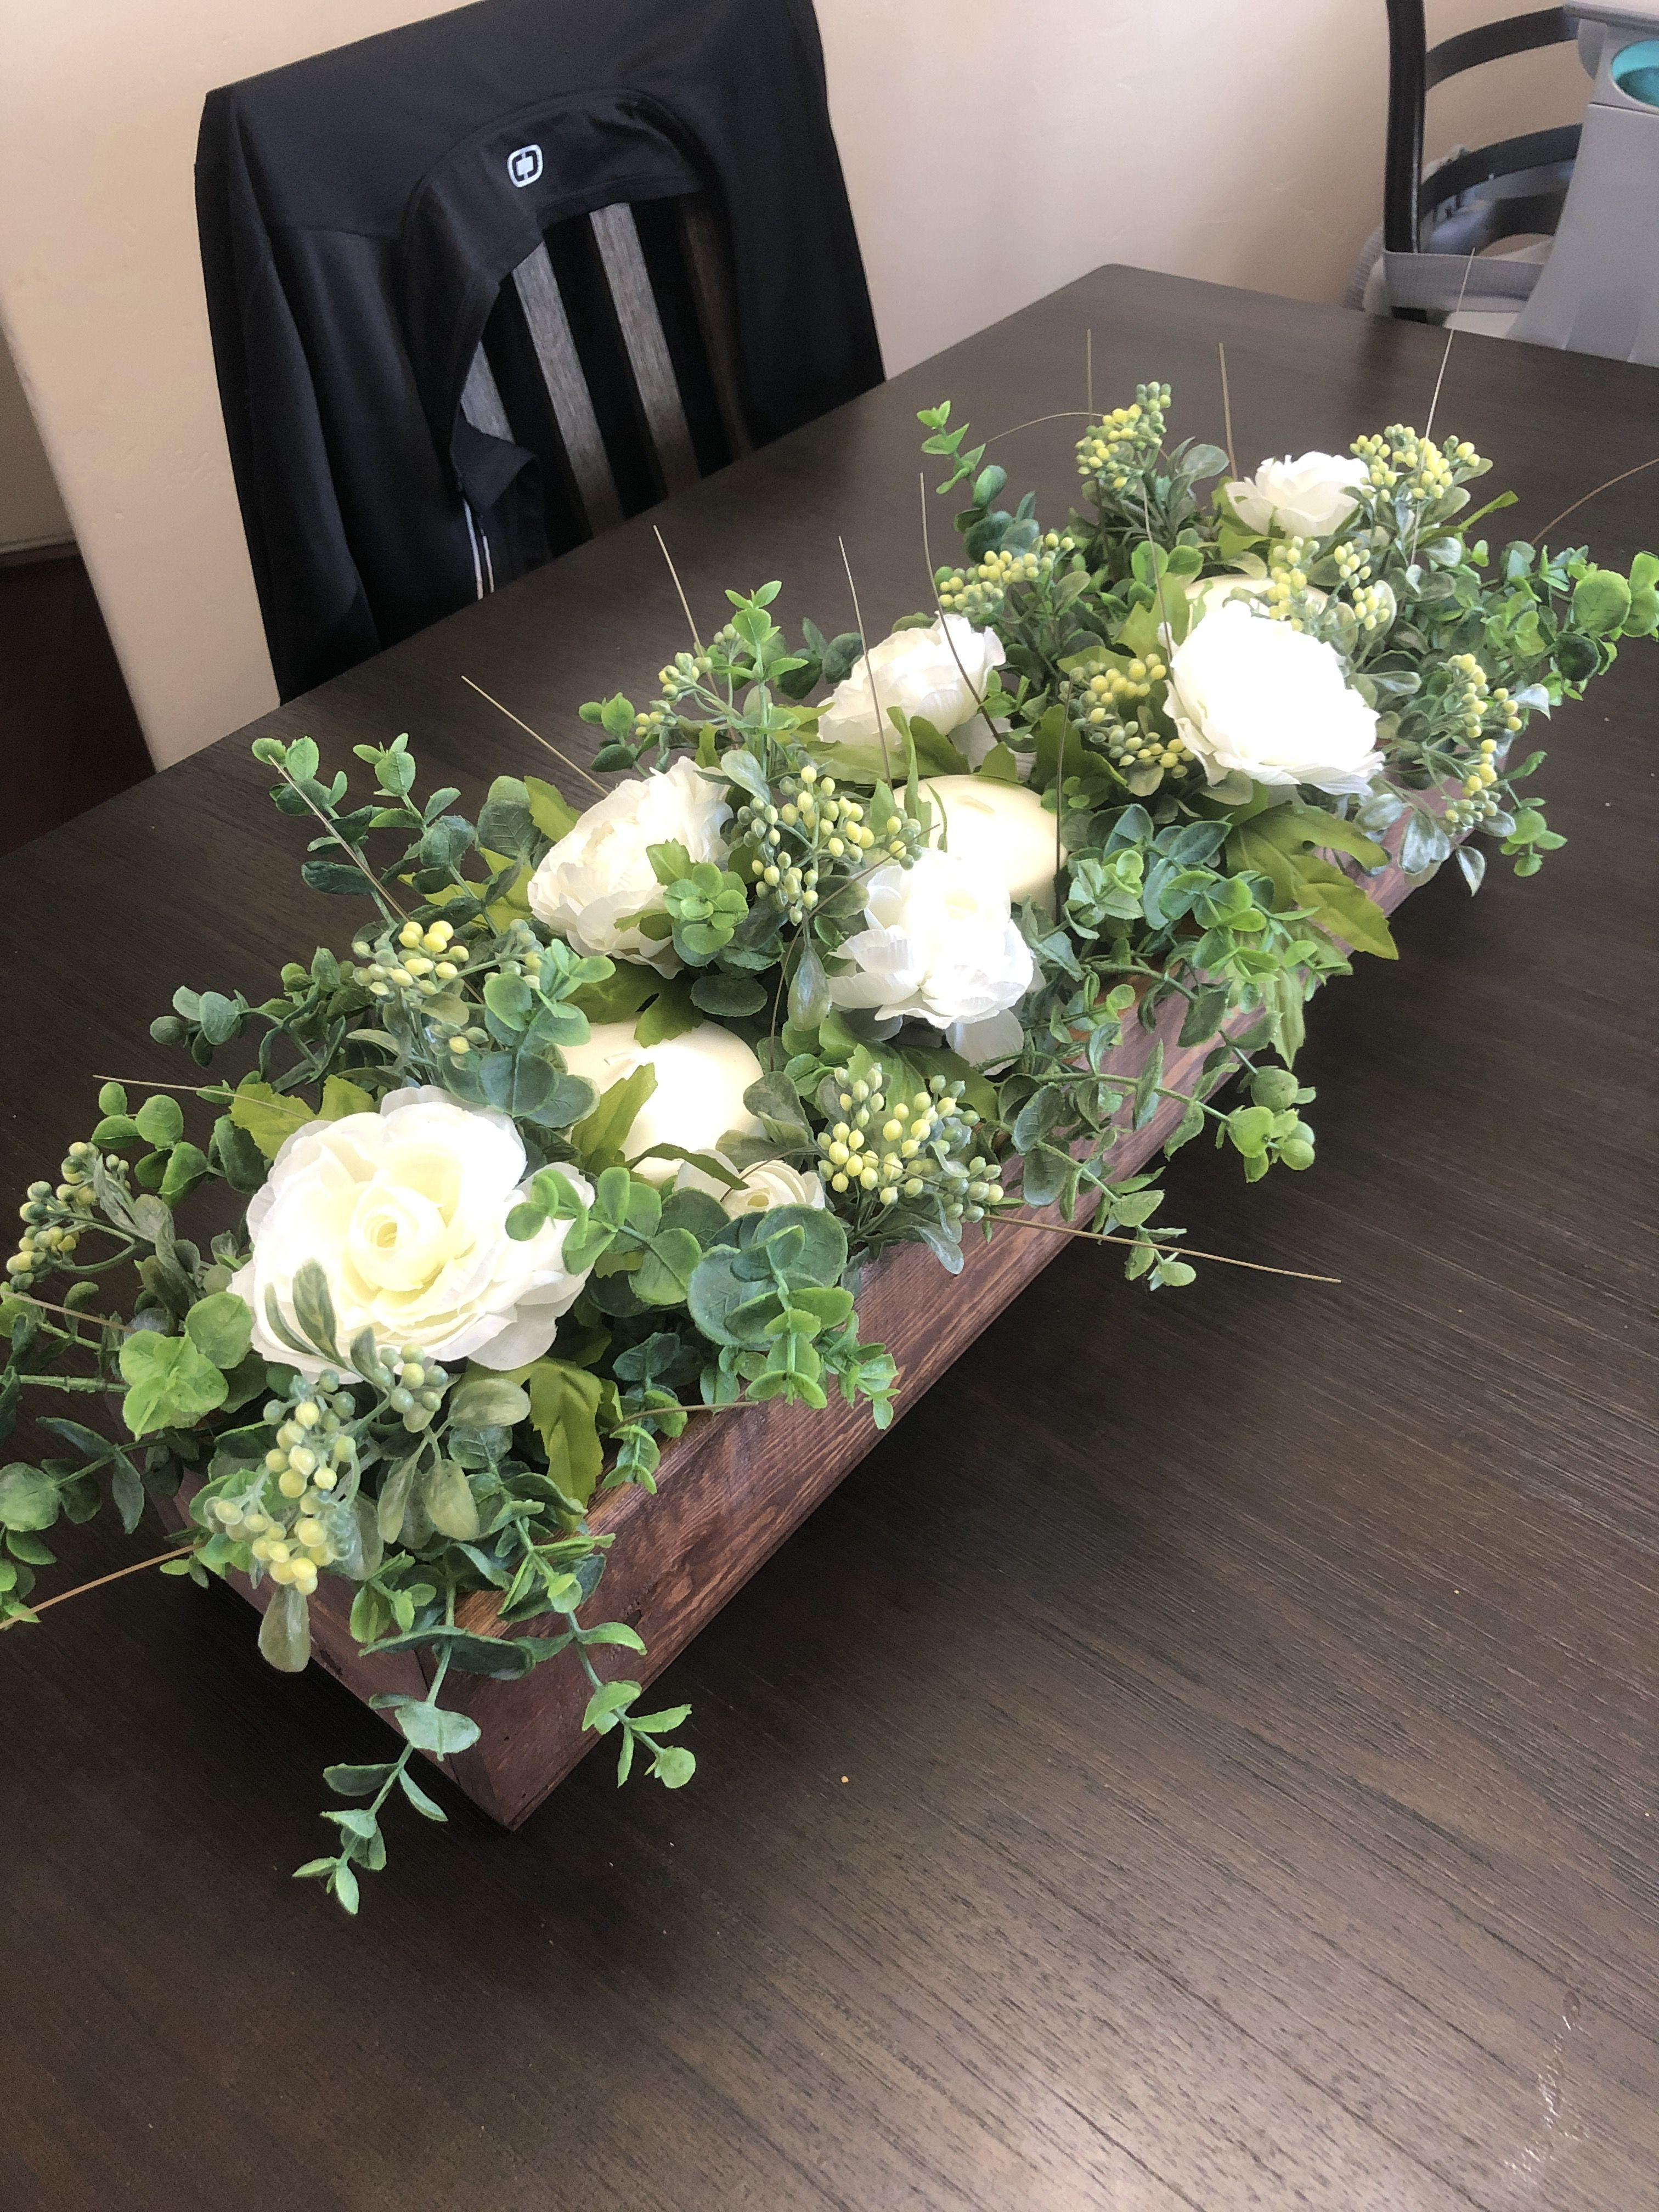 Green Floral Centerpiece Dining Room Table Centerpieces Farmhouse Style Dining Room Wooden Box Centerpiece